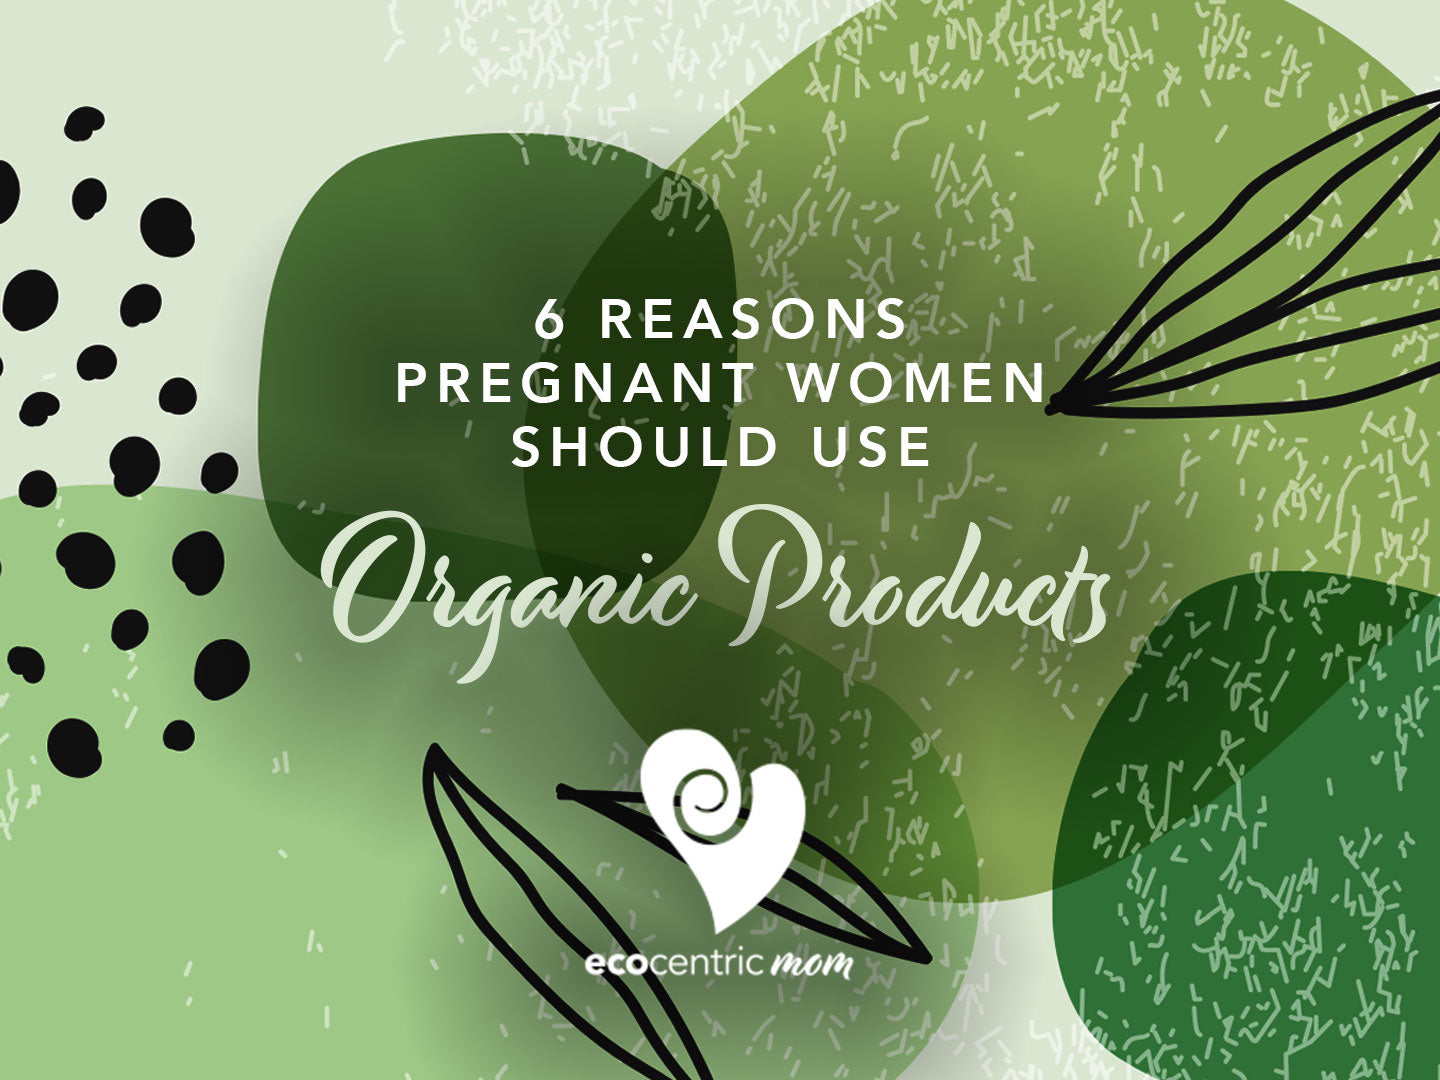 6 Reasons Pregnant Women Should Use Organic Products